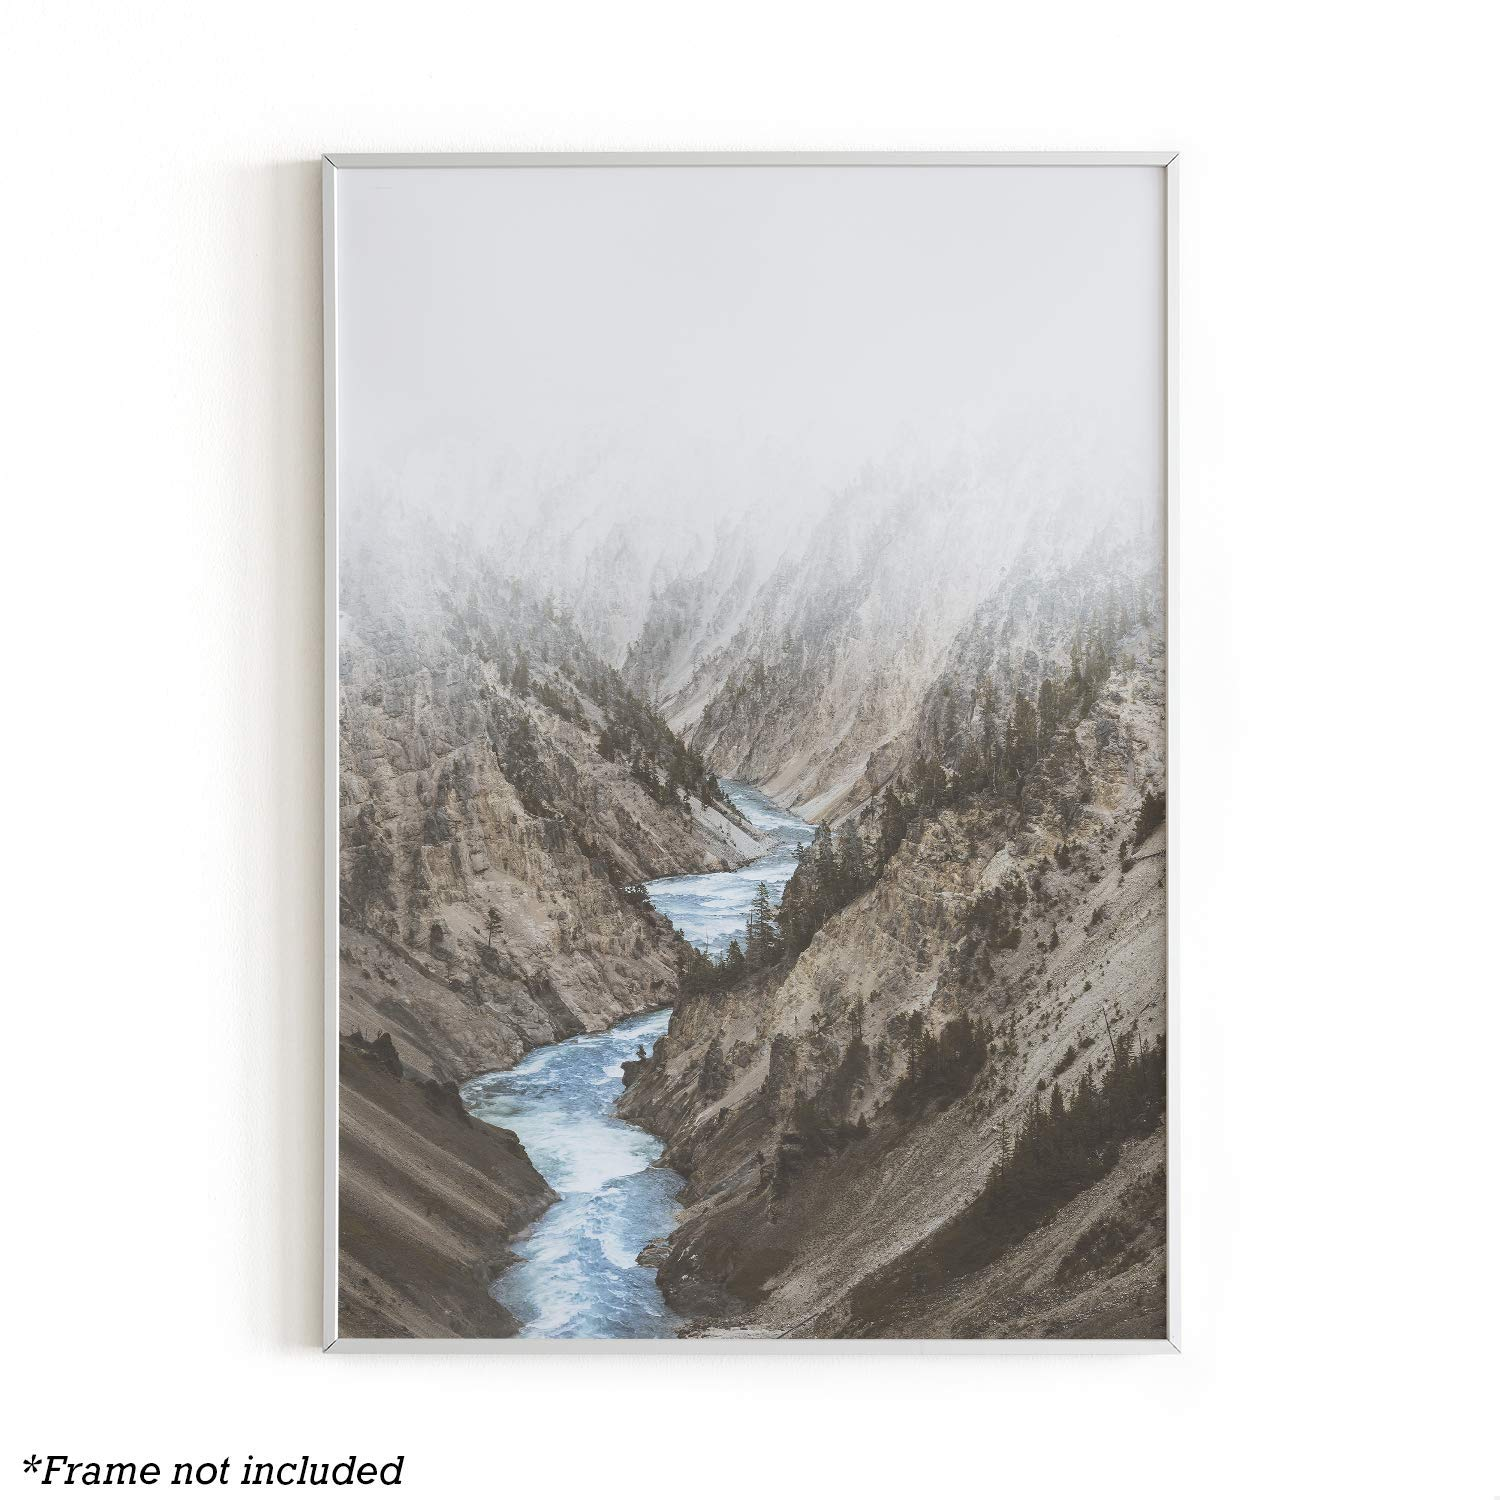 Rivers Wall Art Print by Urban Willow - Mountain, Nature, Landscape Themed Home, Office, Apartment, Dorm Wall Decor - Unframed/Frameable Poster Wall Decoration - 12 in x 16 in